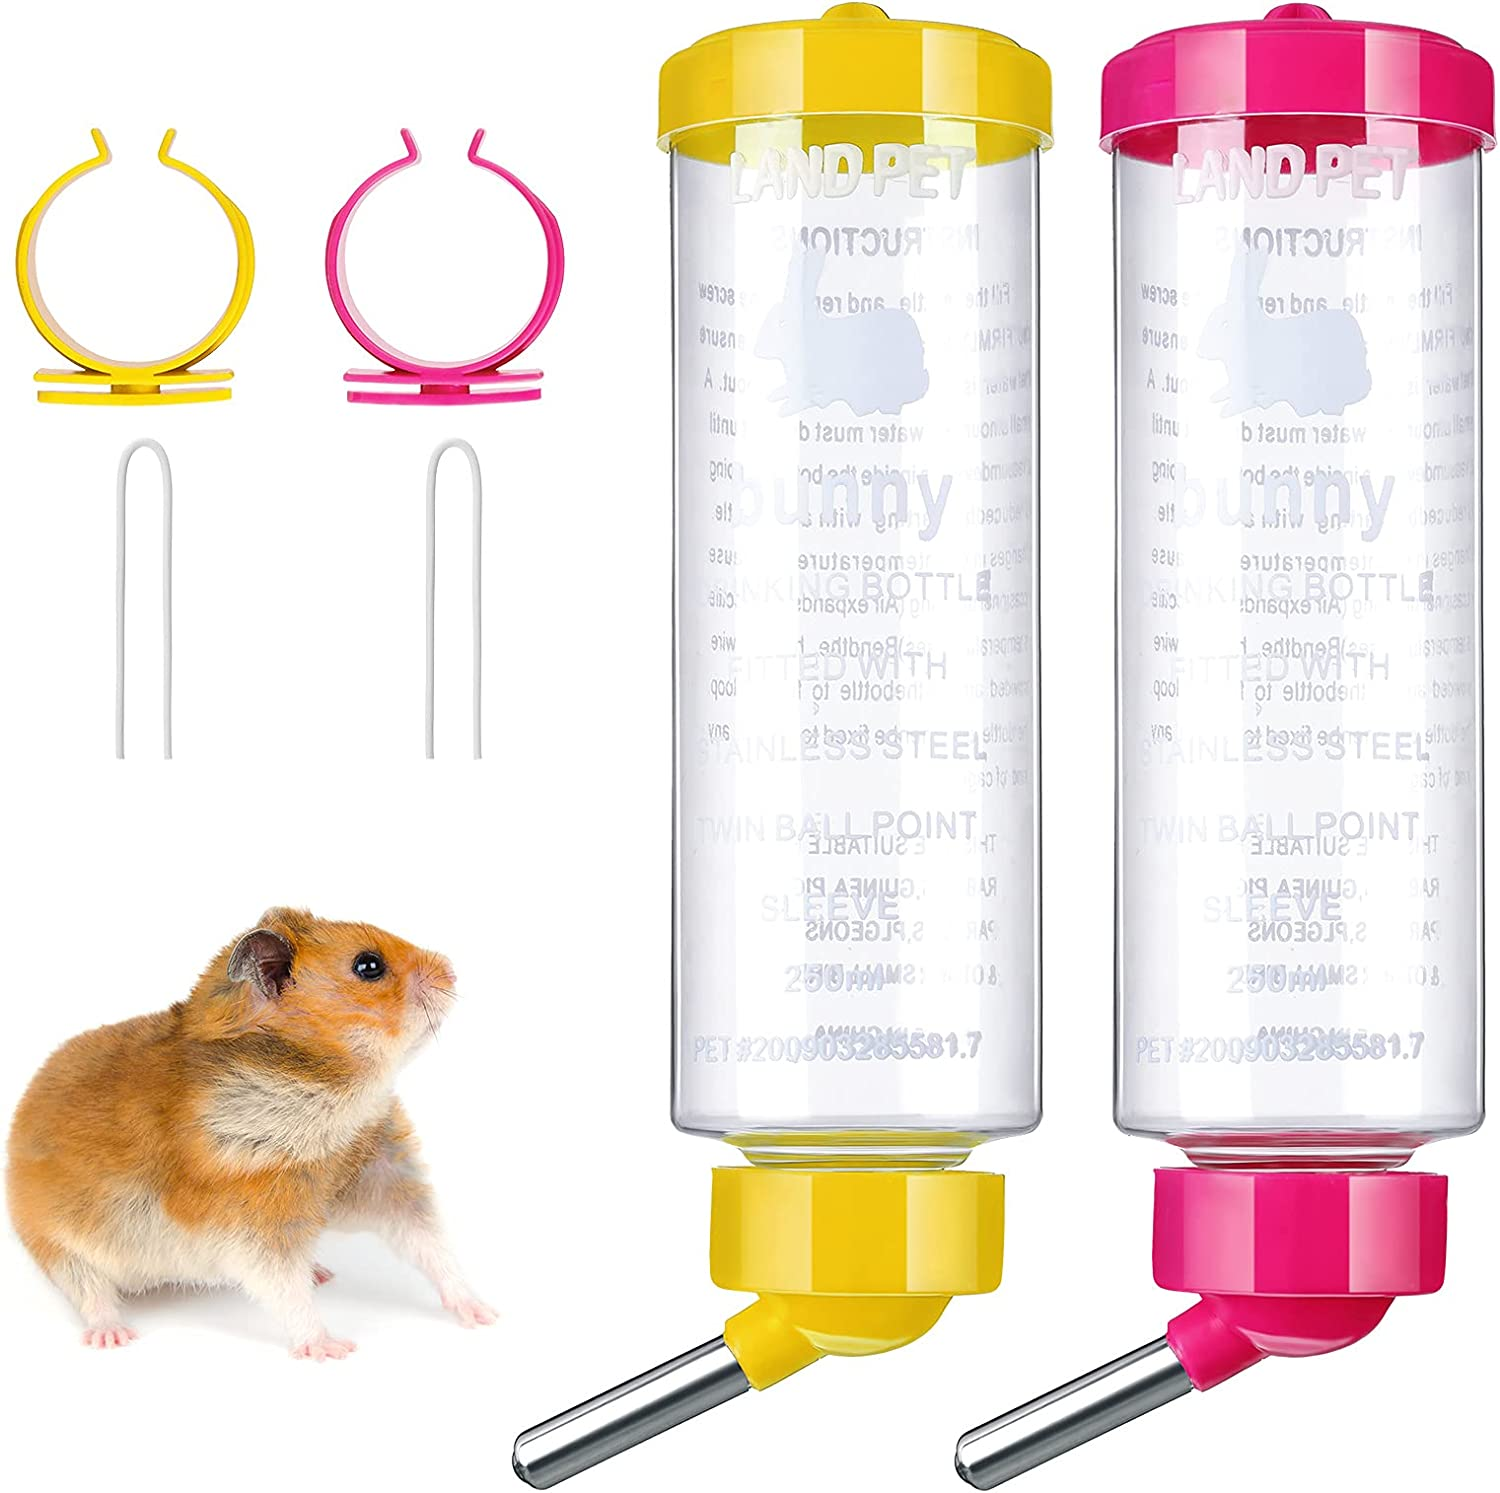 2 Pieces 8.45 oz Guinea Pig Water National uniform free shipping Drip No Cheap mail order sales Animal Small D Bottle